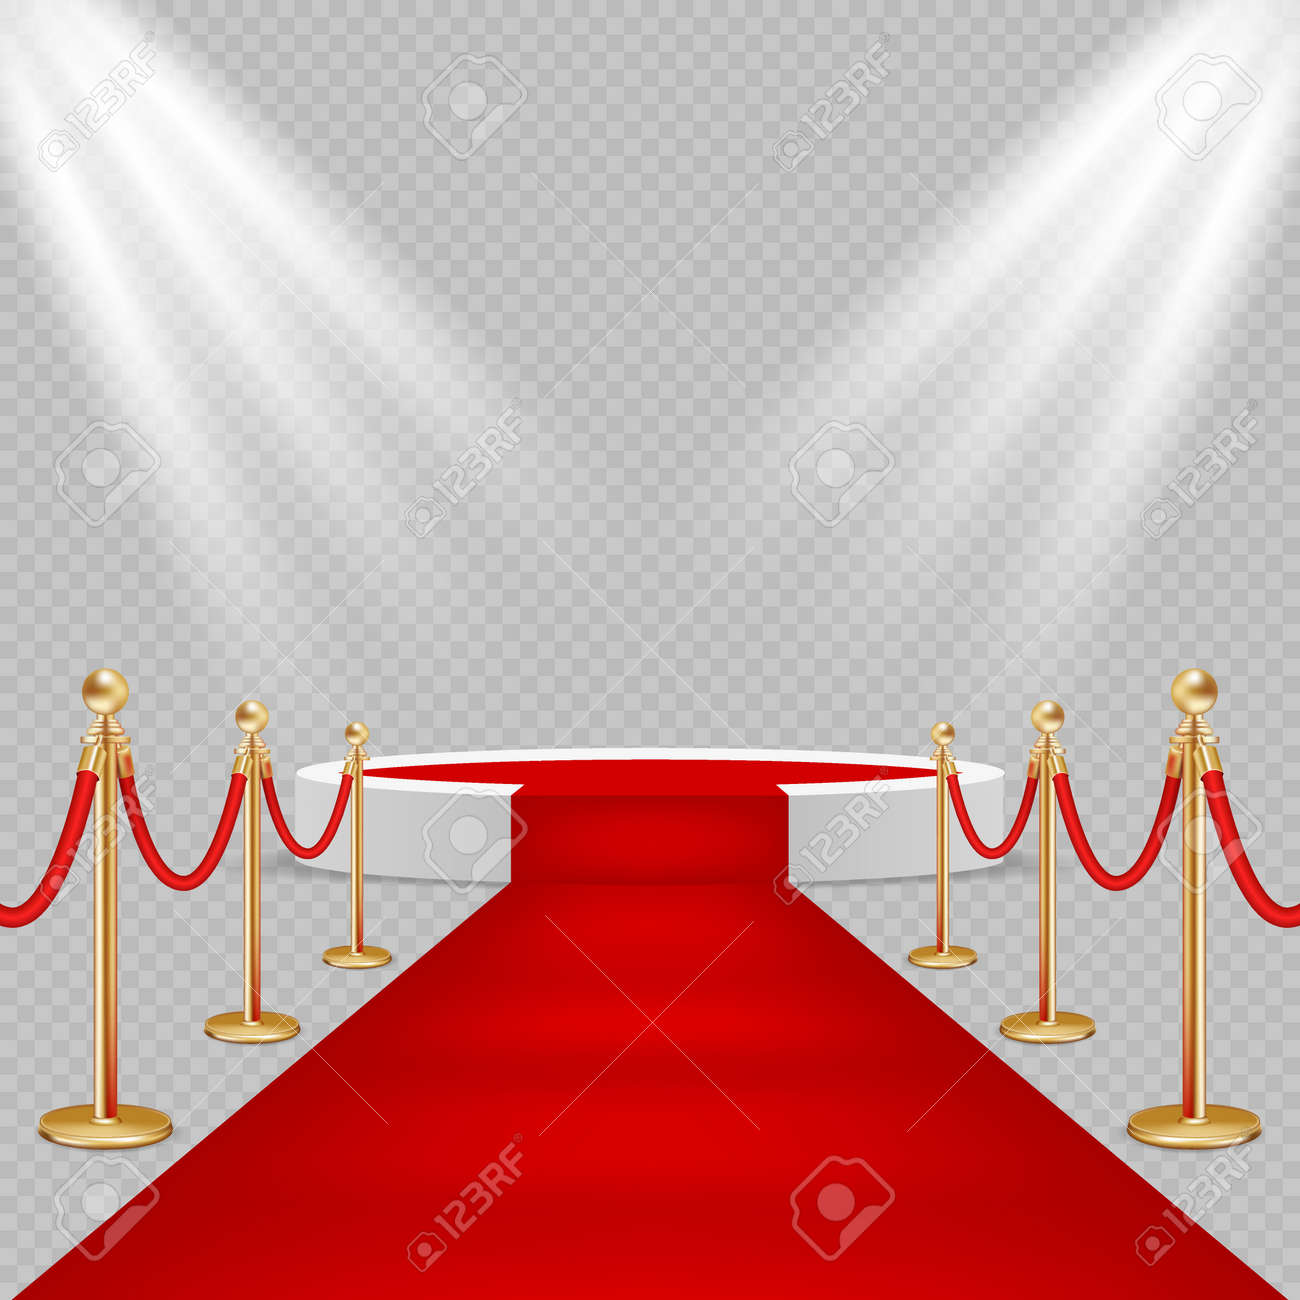 White round podium with red carpet vector realistic illustration - 88085653